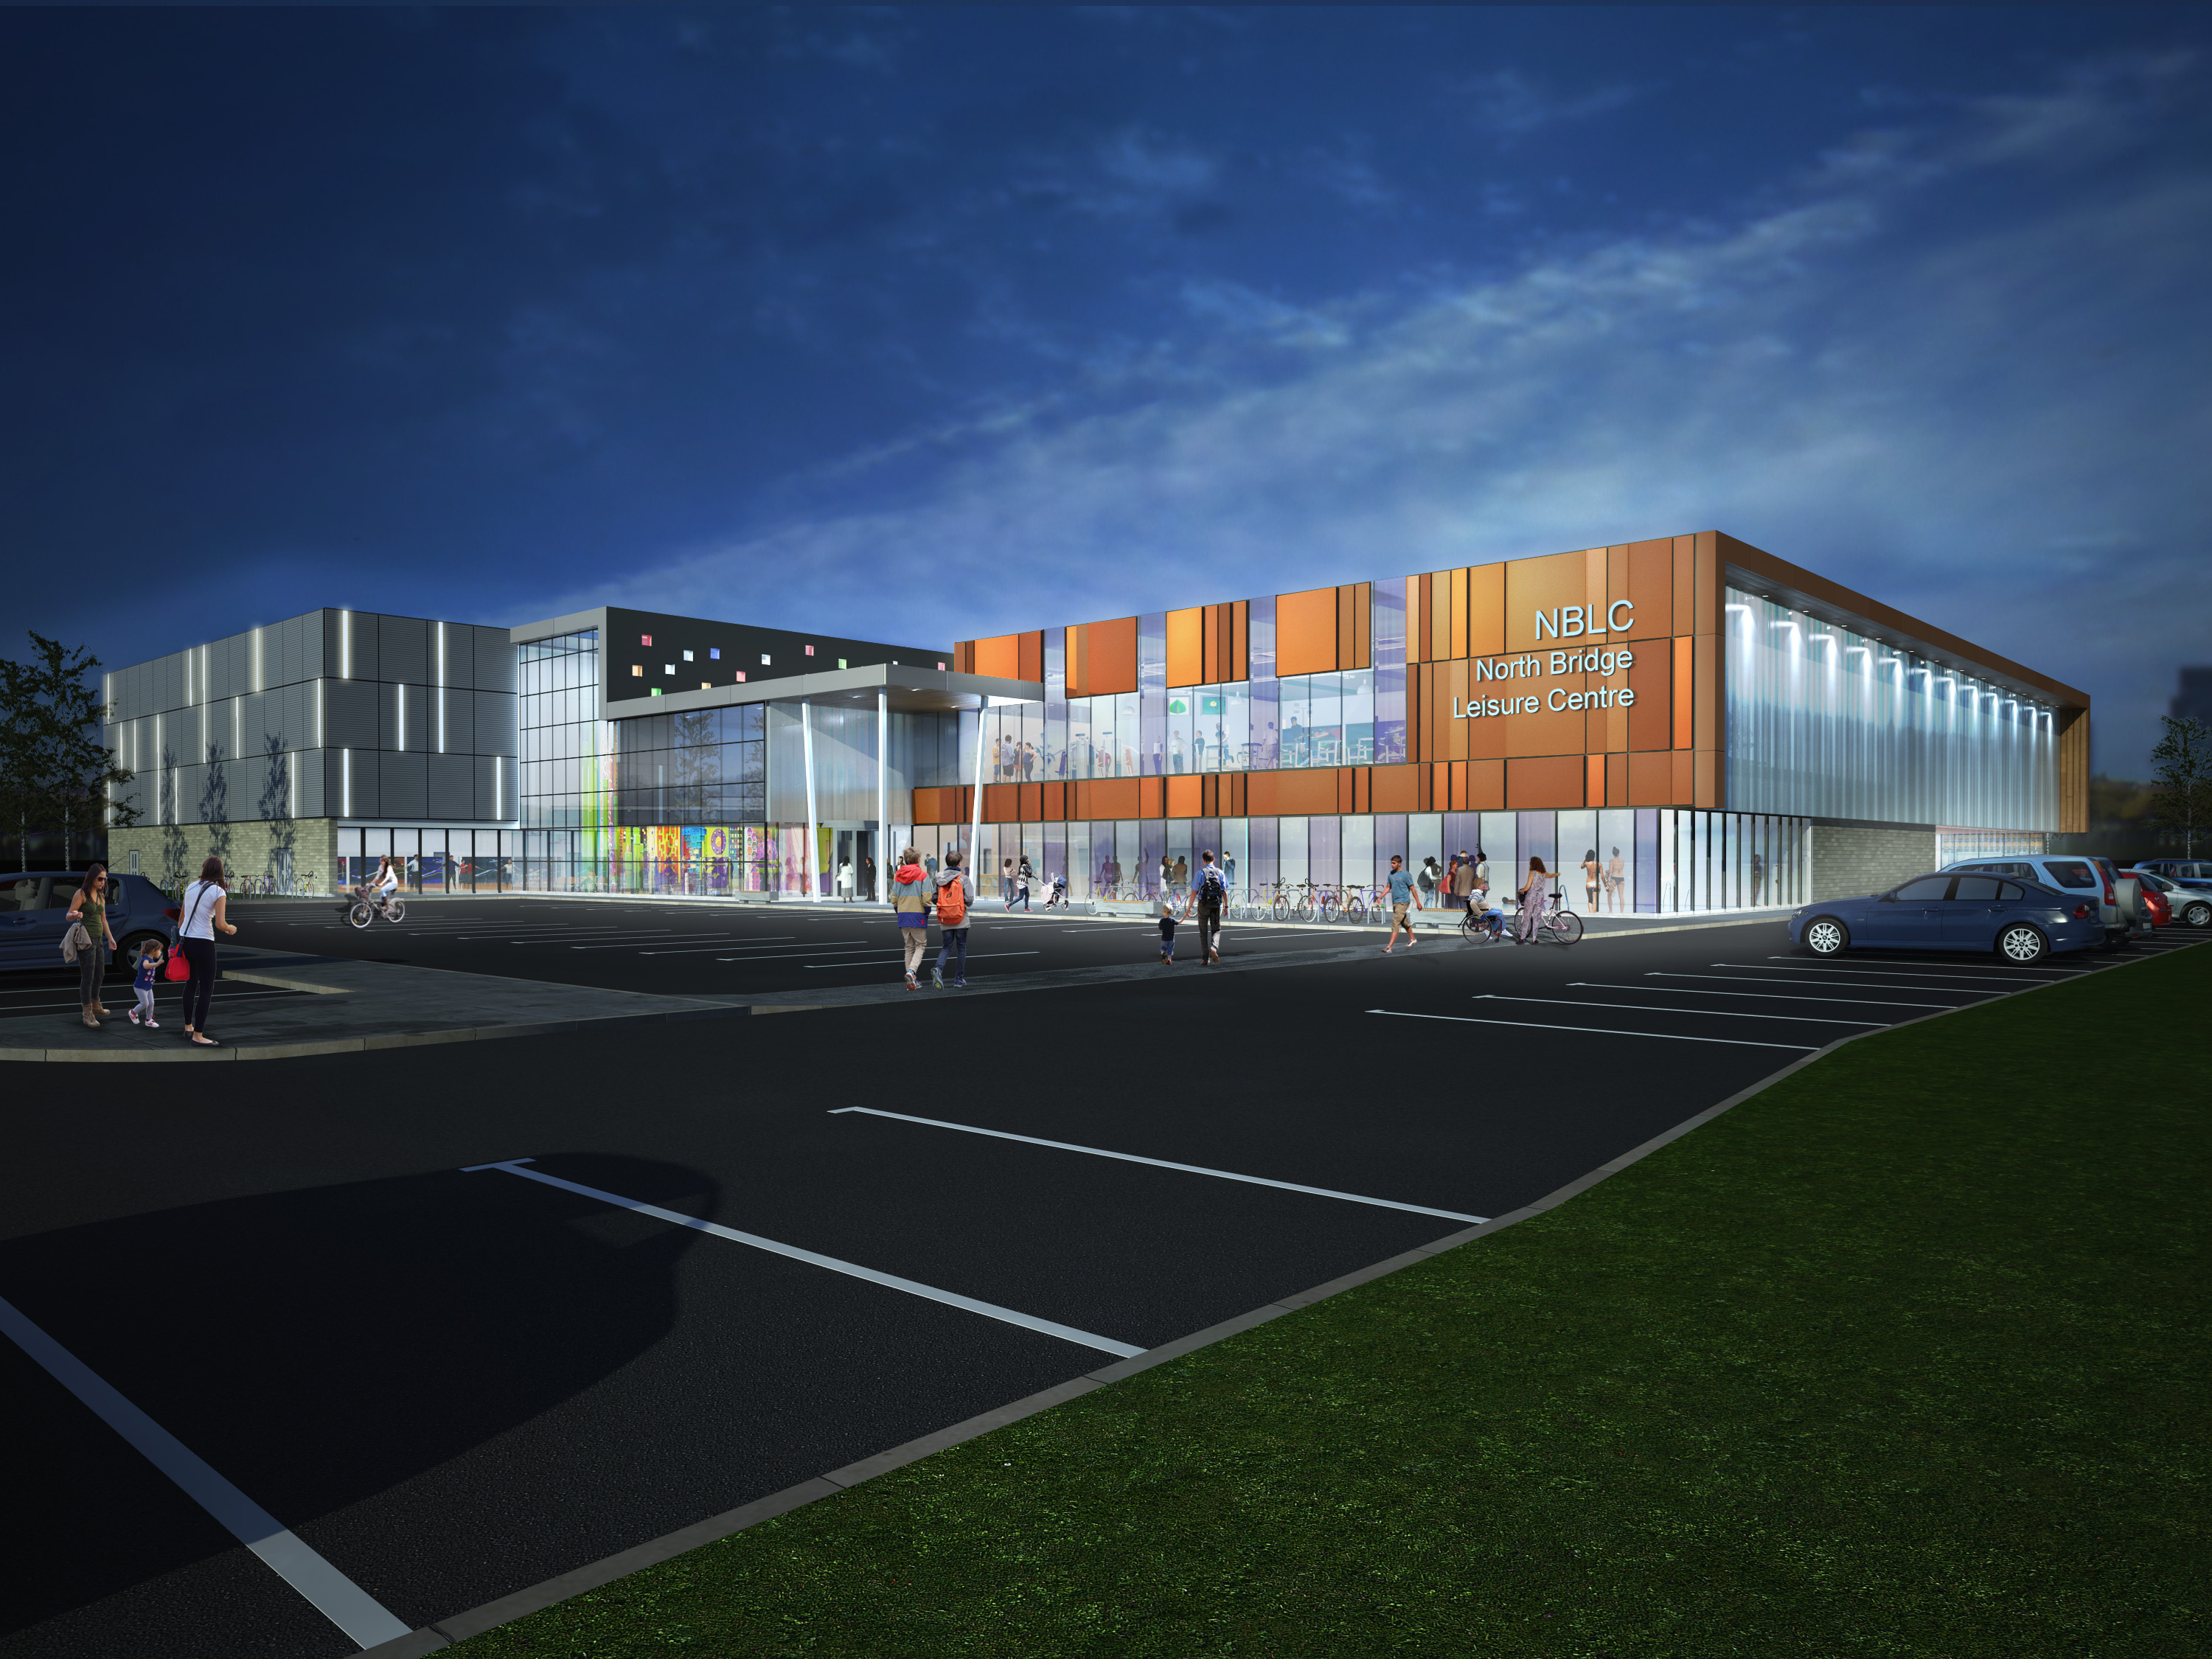 What Do You Want To See In The New Halifax Leisure Centre News Next Chapter Into Cabinet